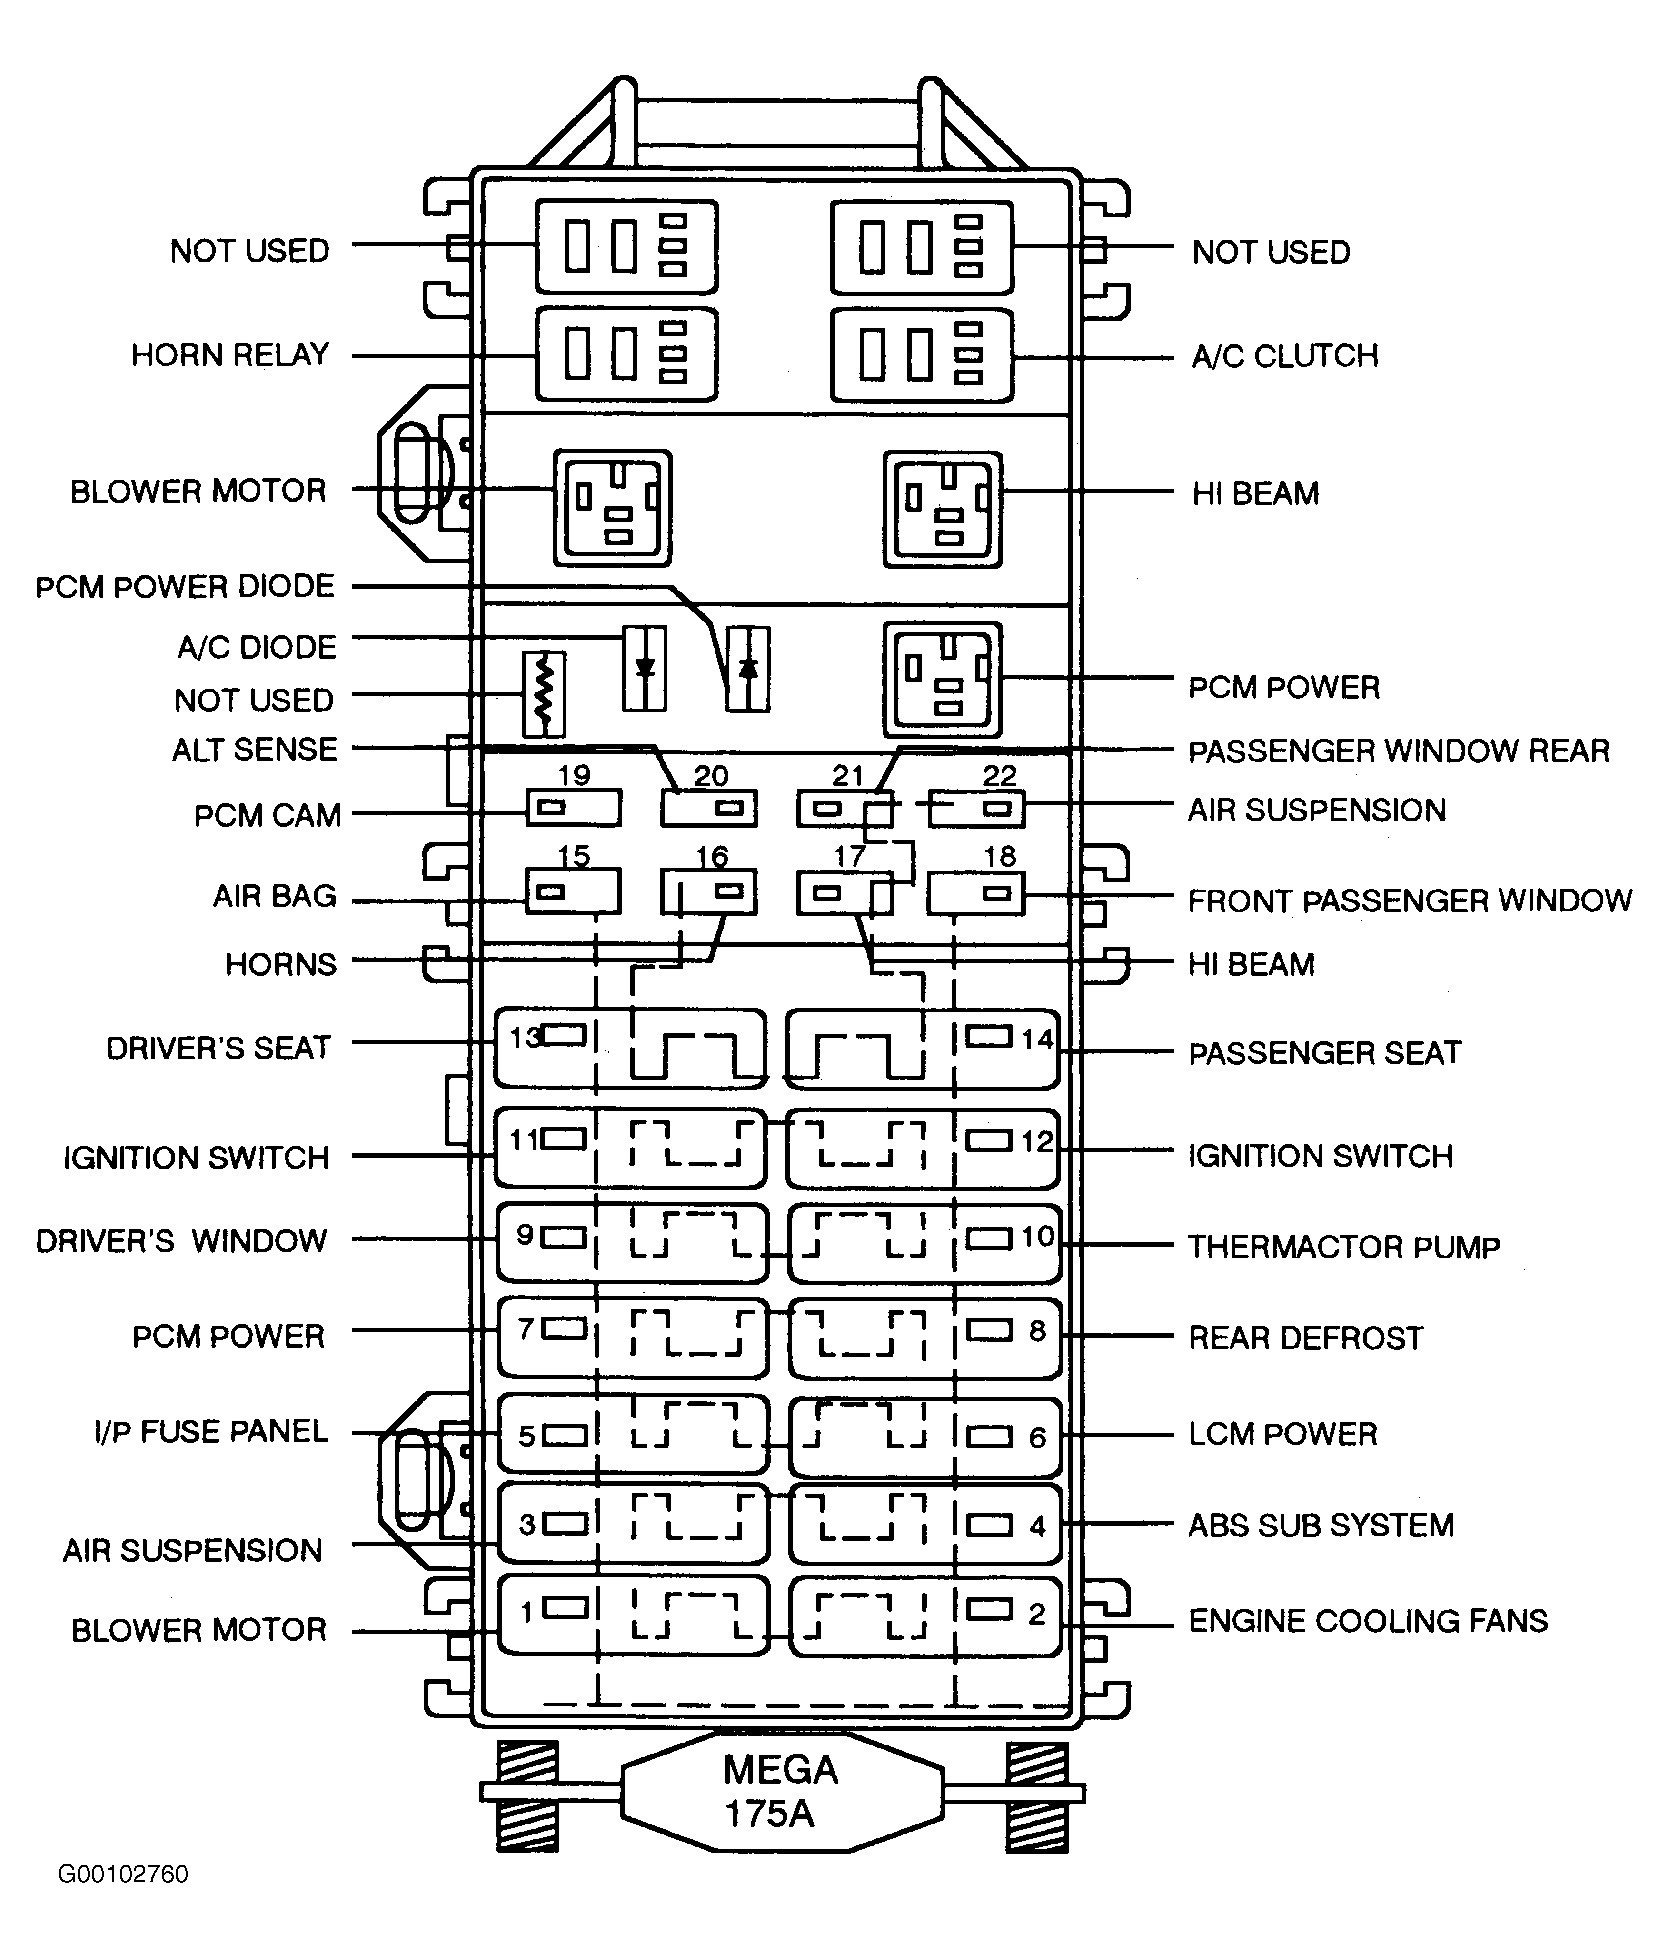 hight resolution of for a 2000 lincoln town car fuse diagram interior explained wiring